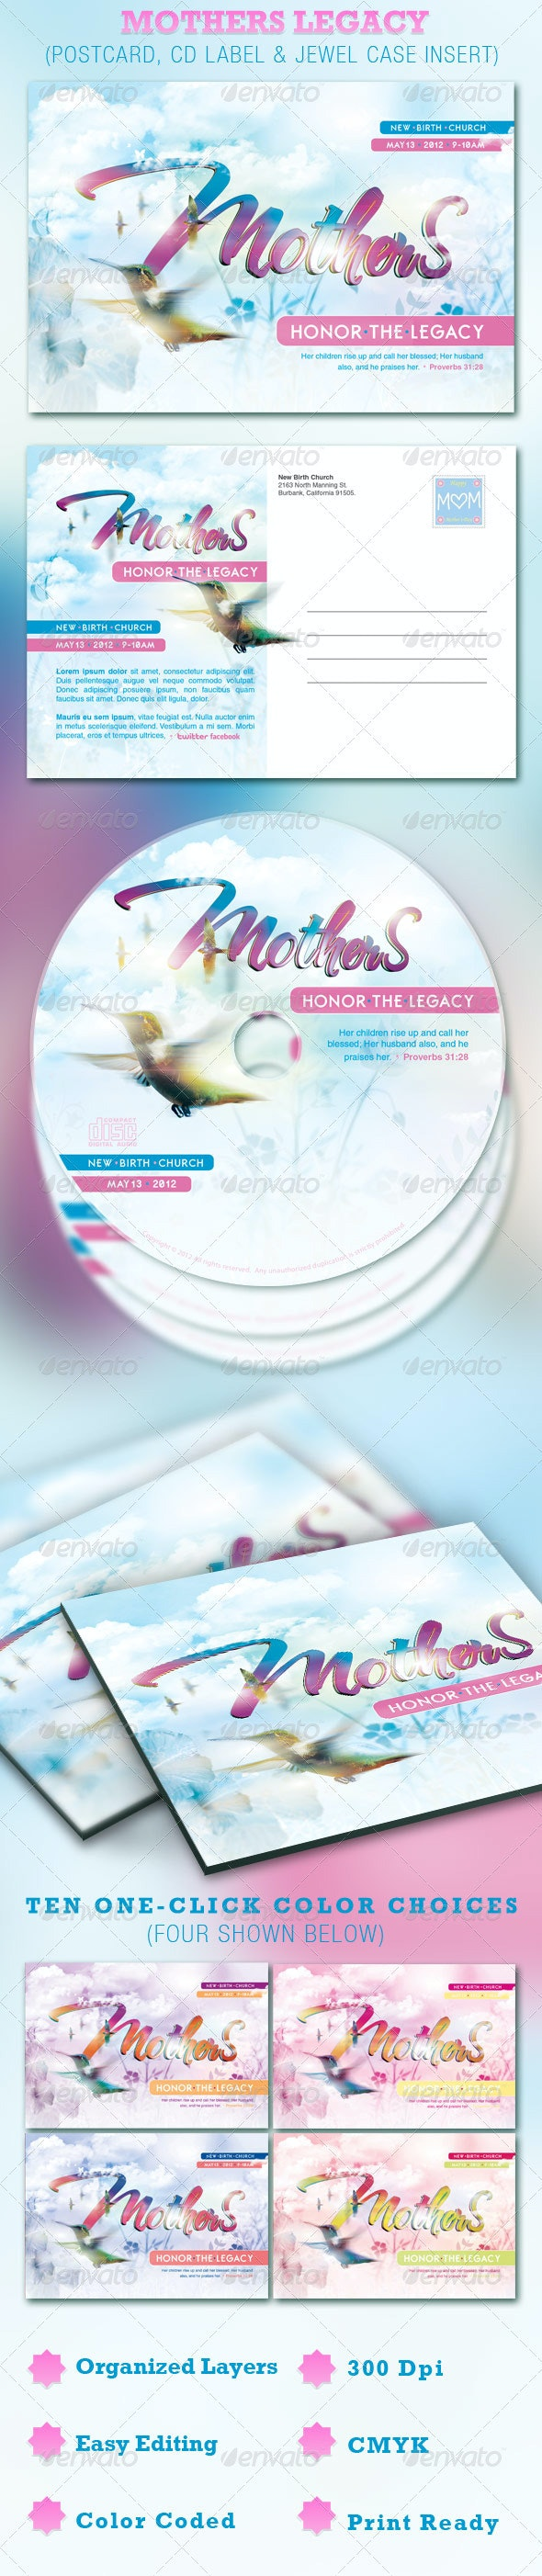 Mothers Legacy Church Postcard and CD Template - Cards & Invites Print Templates